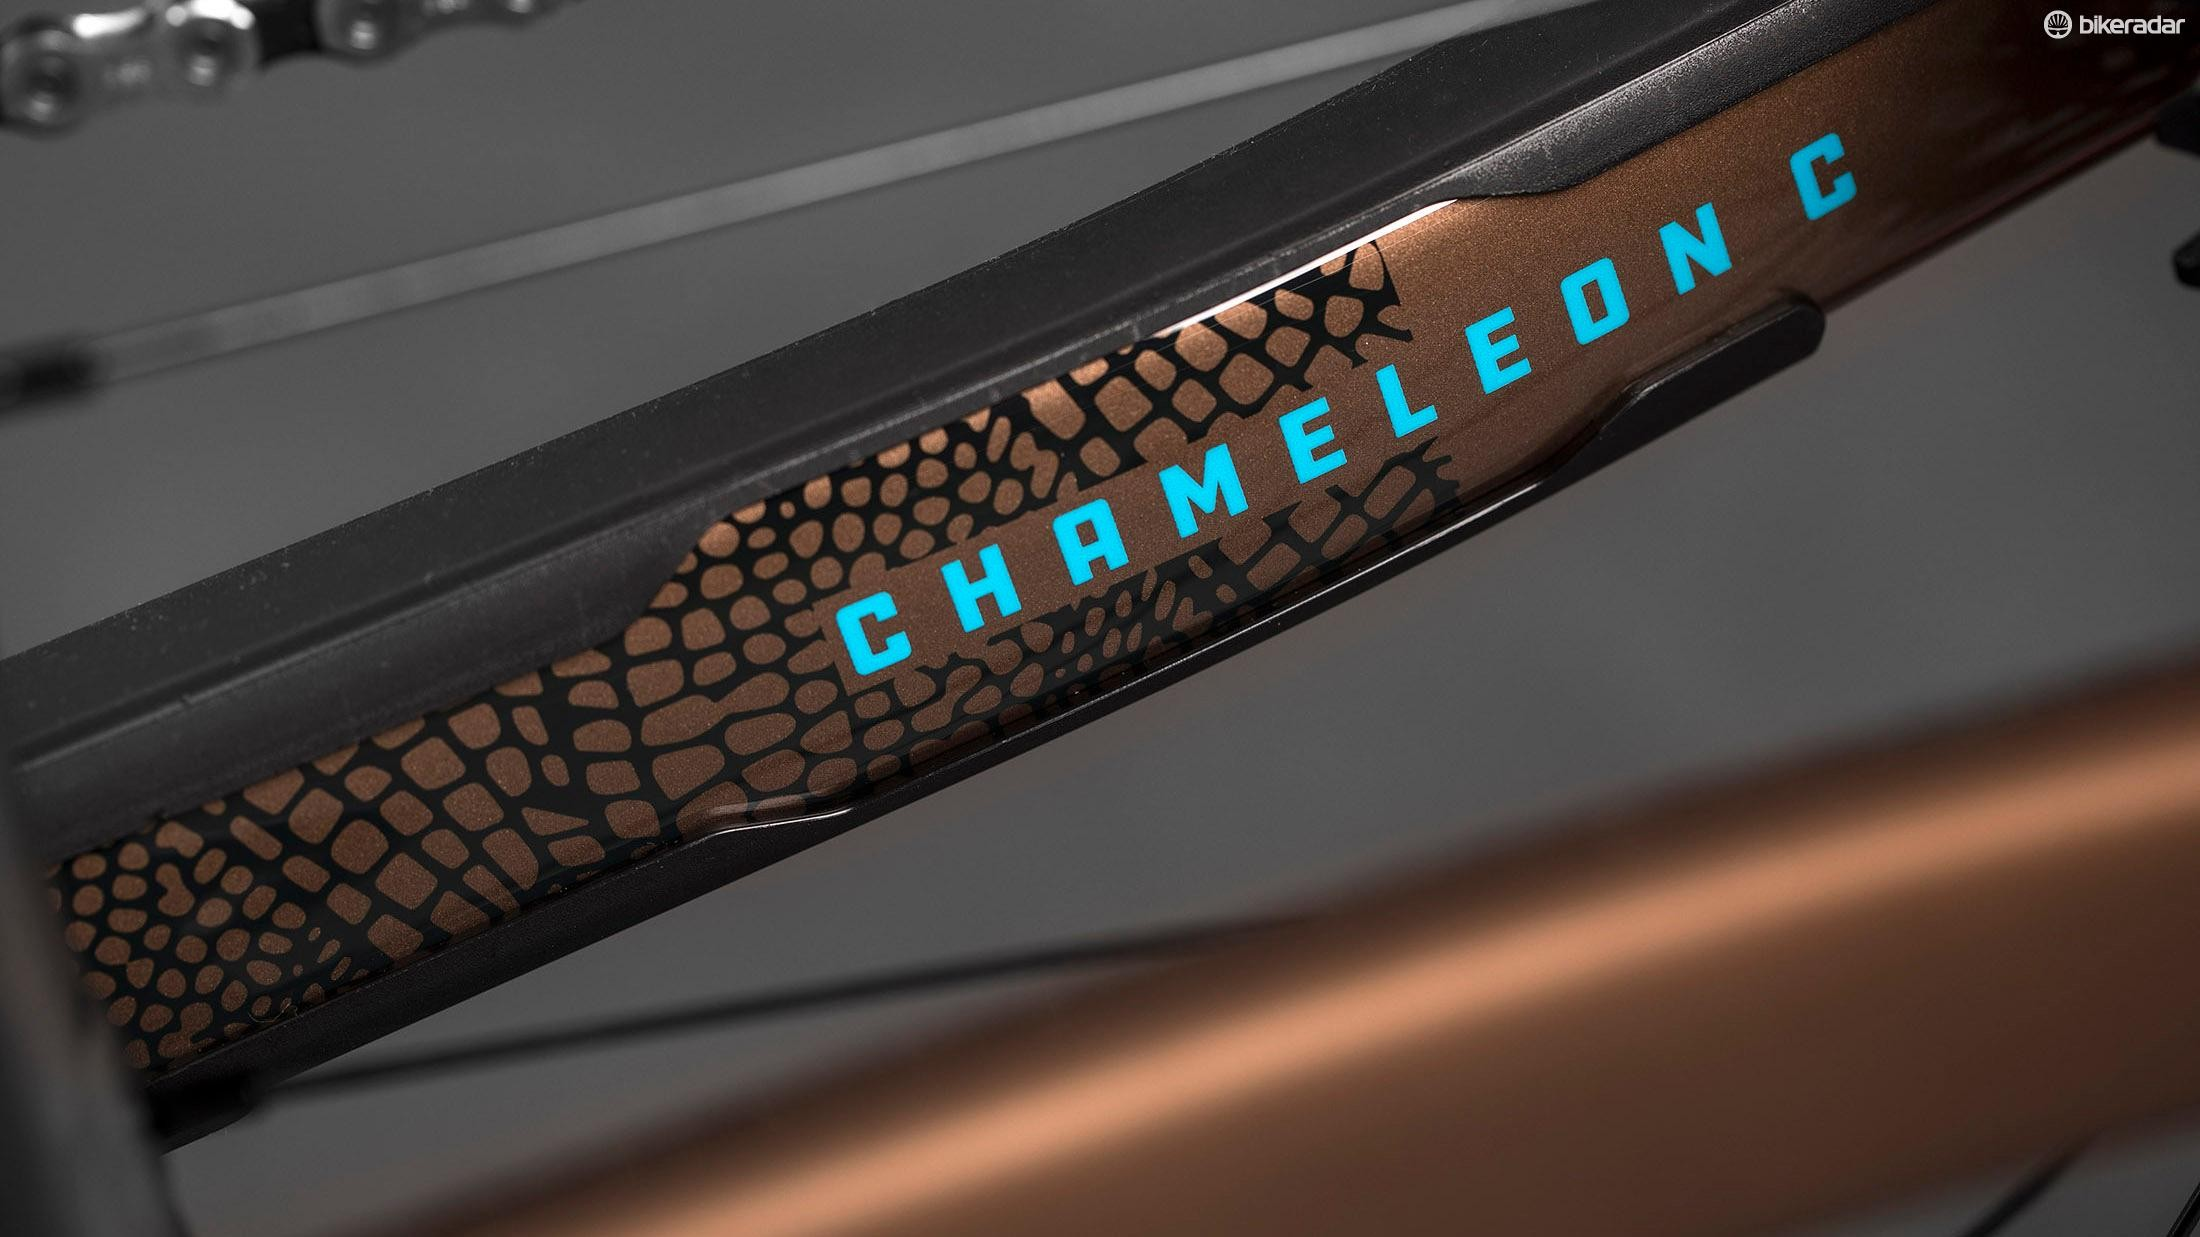 The Chameleon C comes in four models